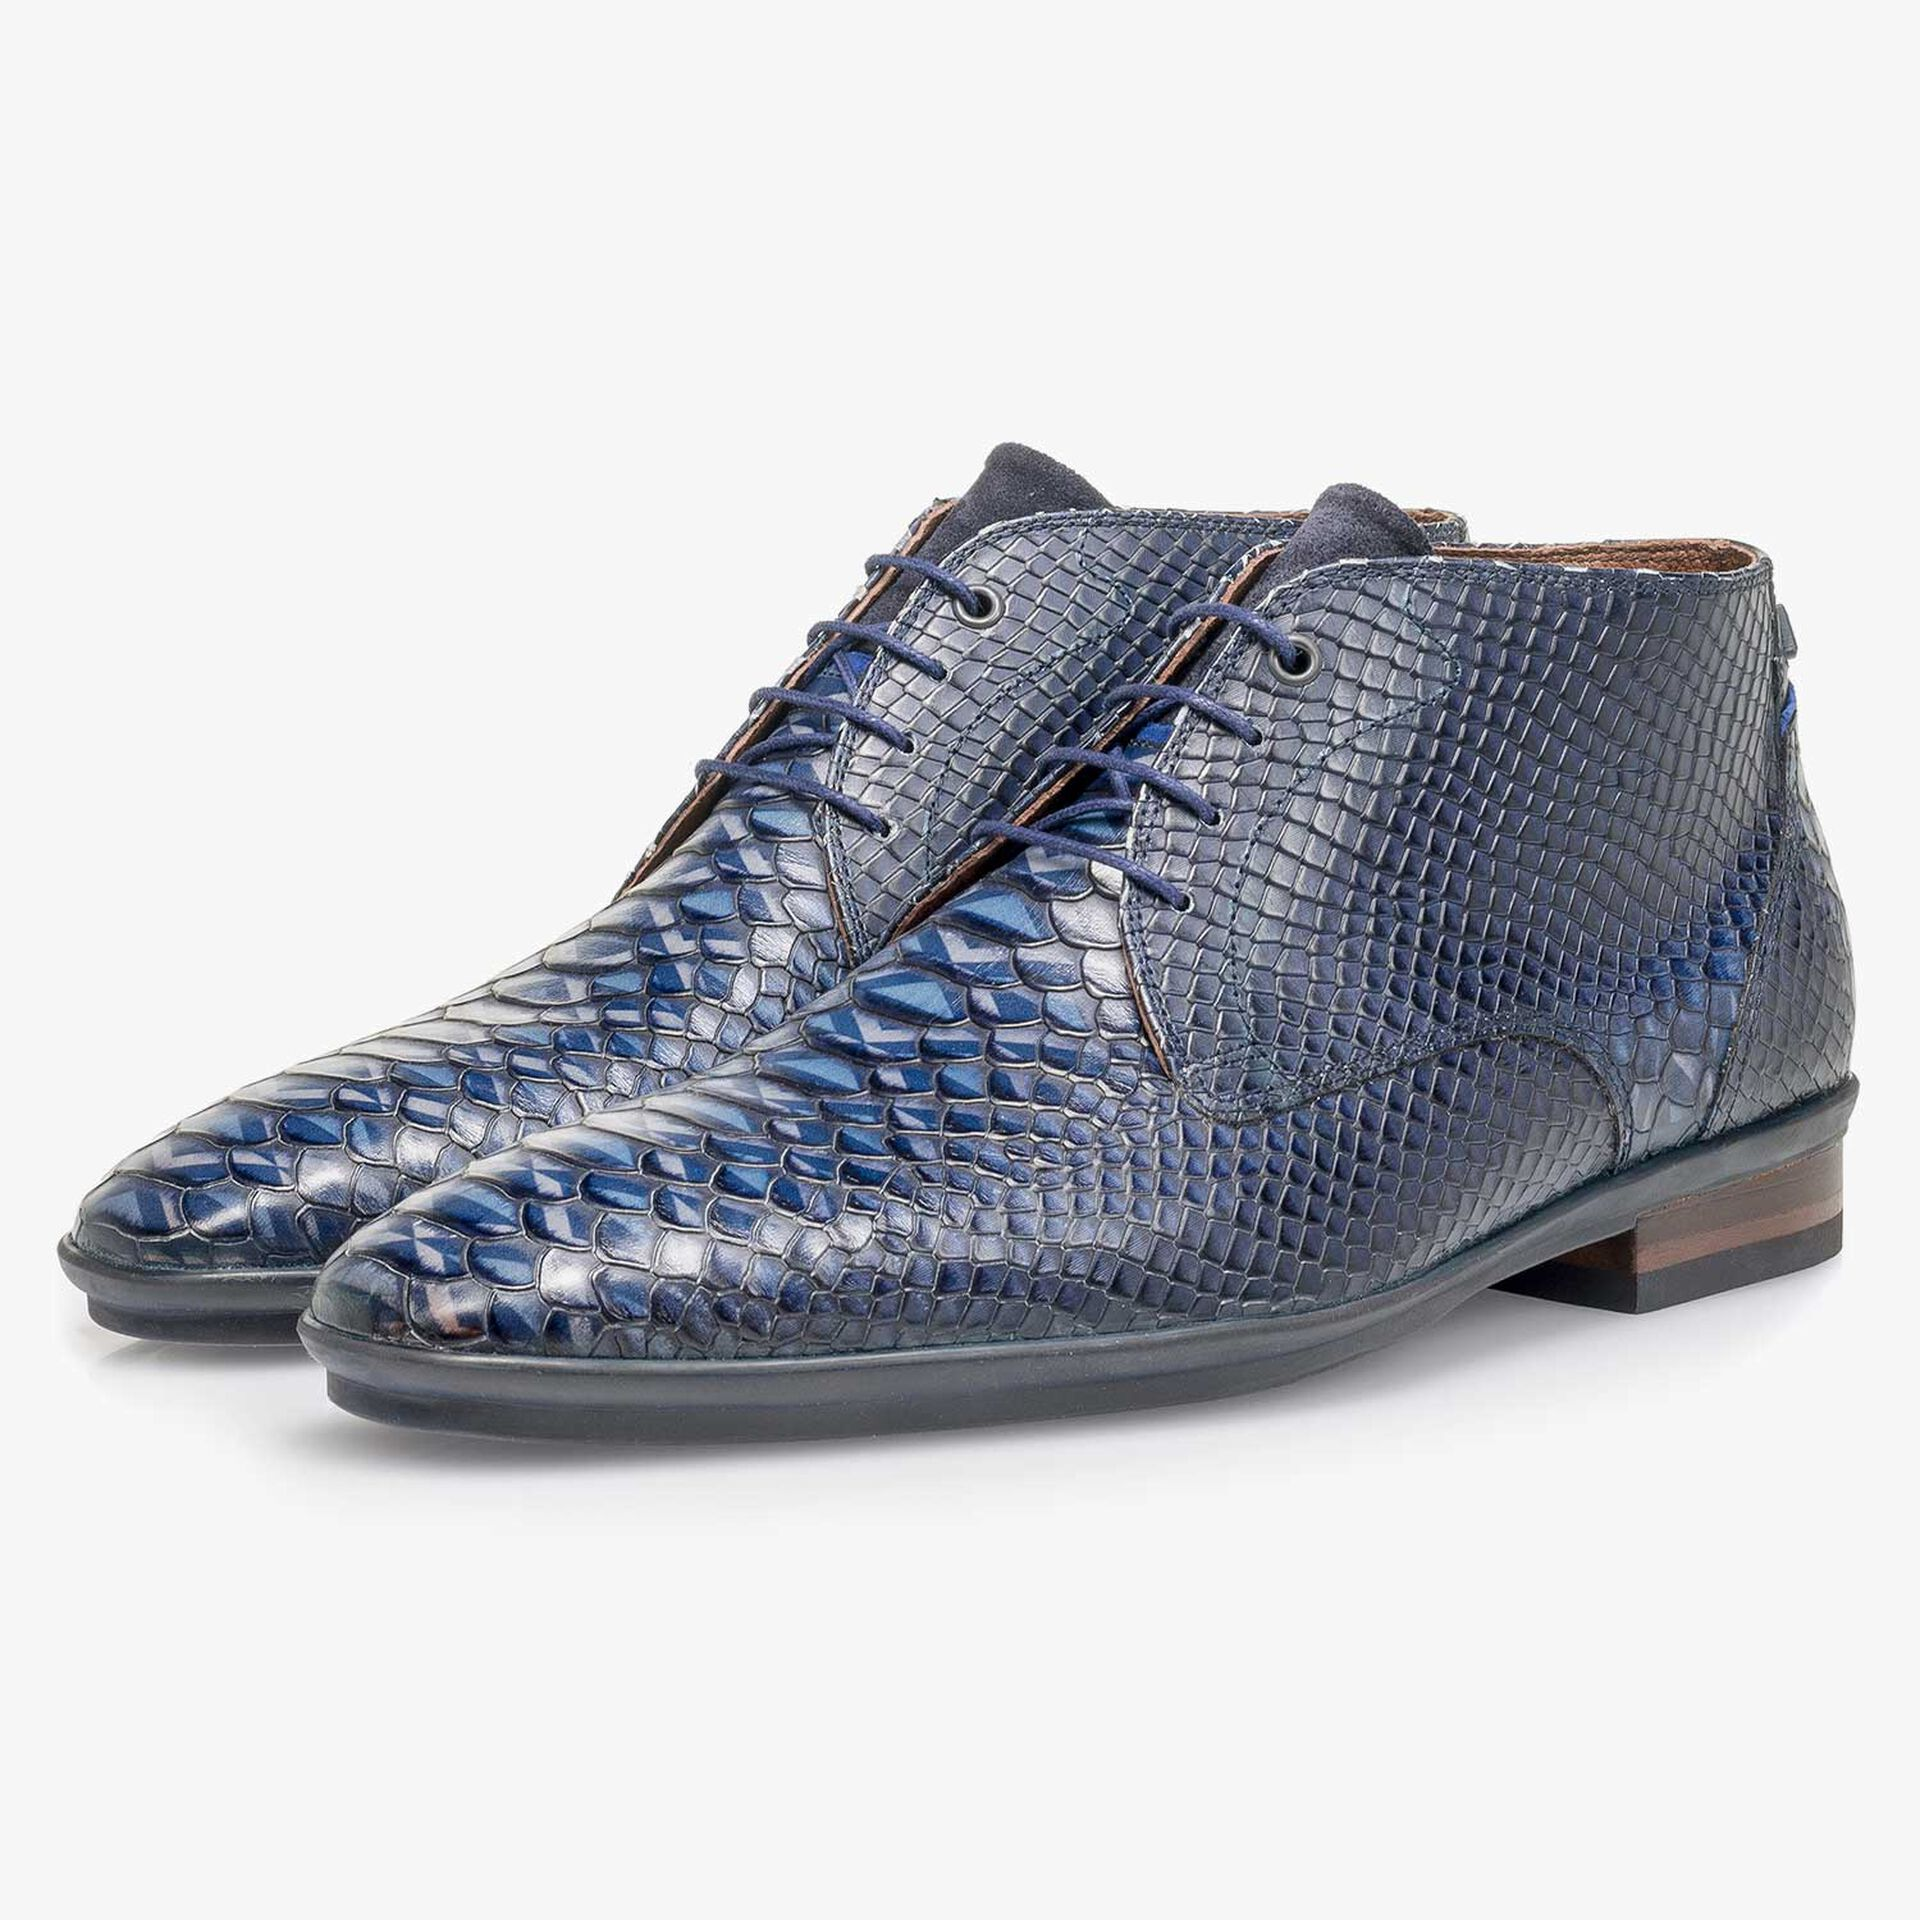 Blue calf leather lace shoe with snake print